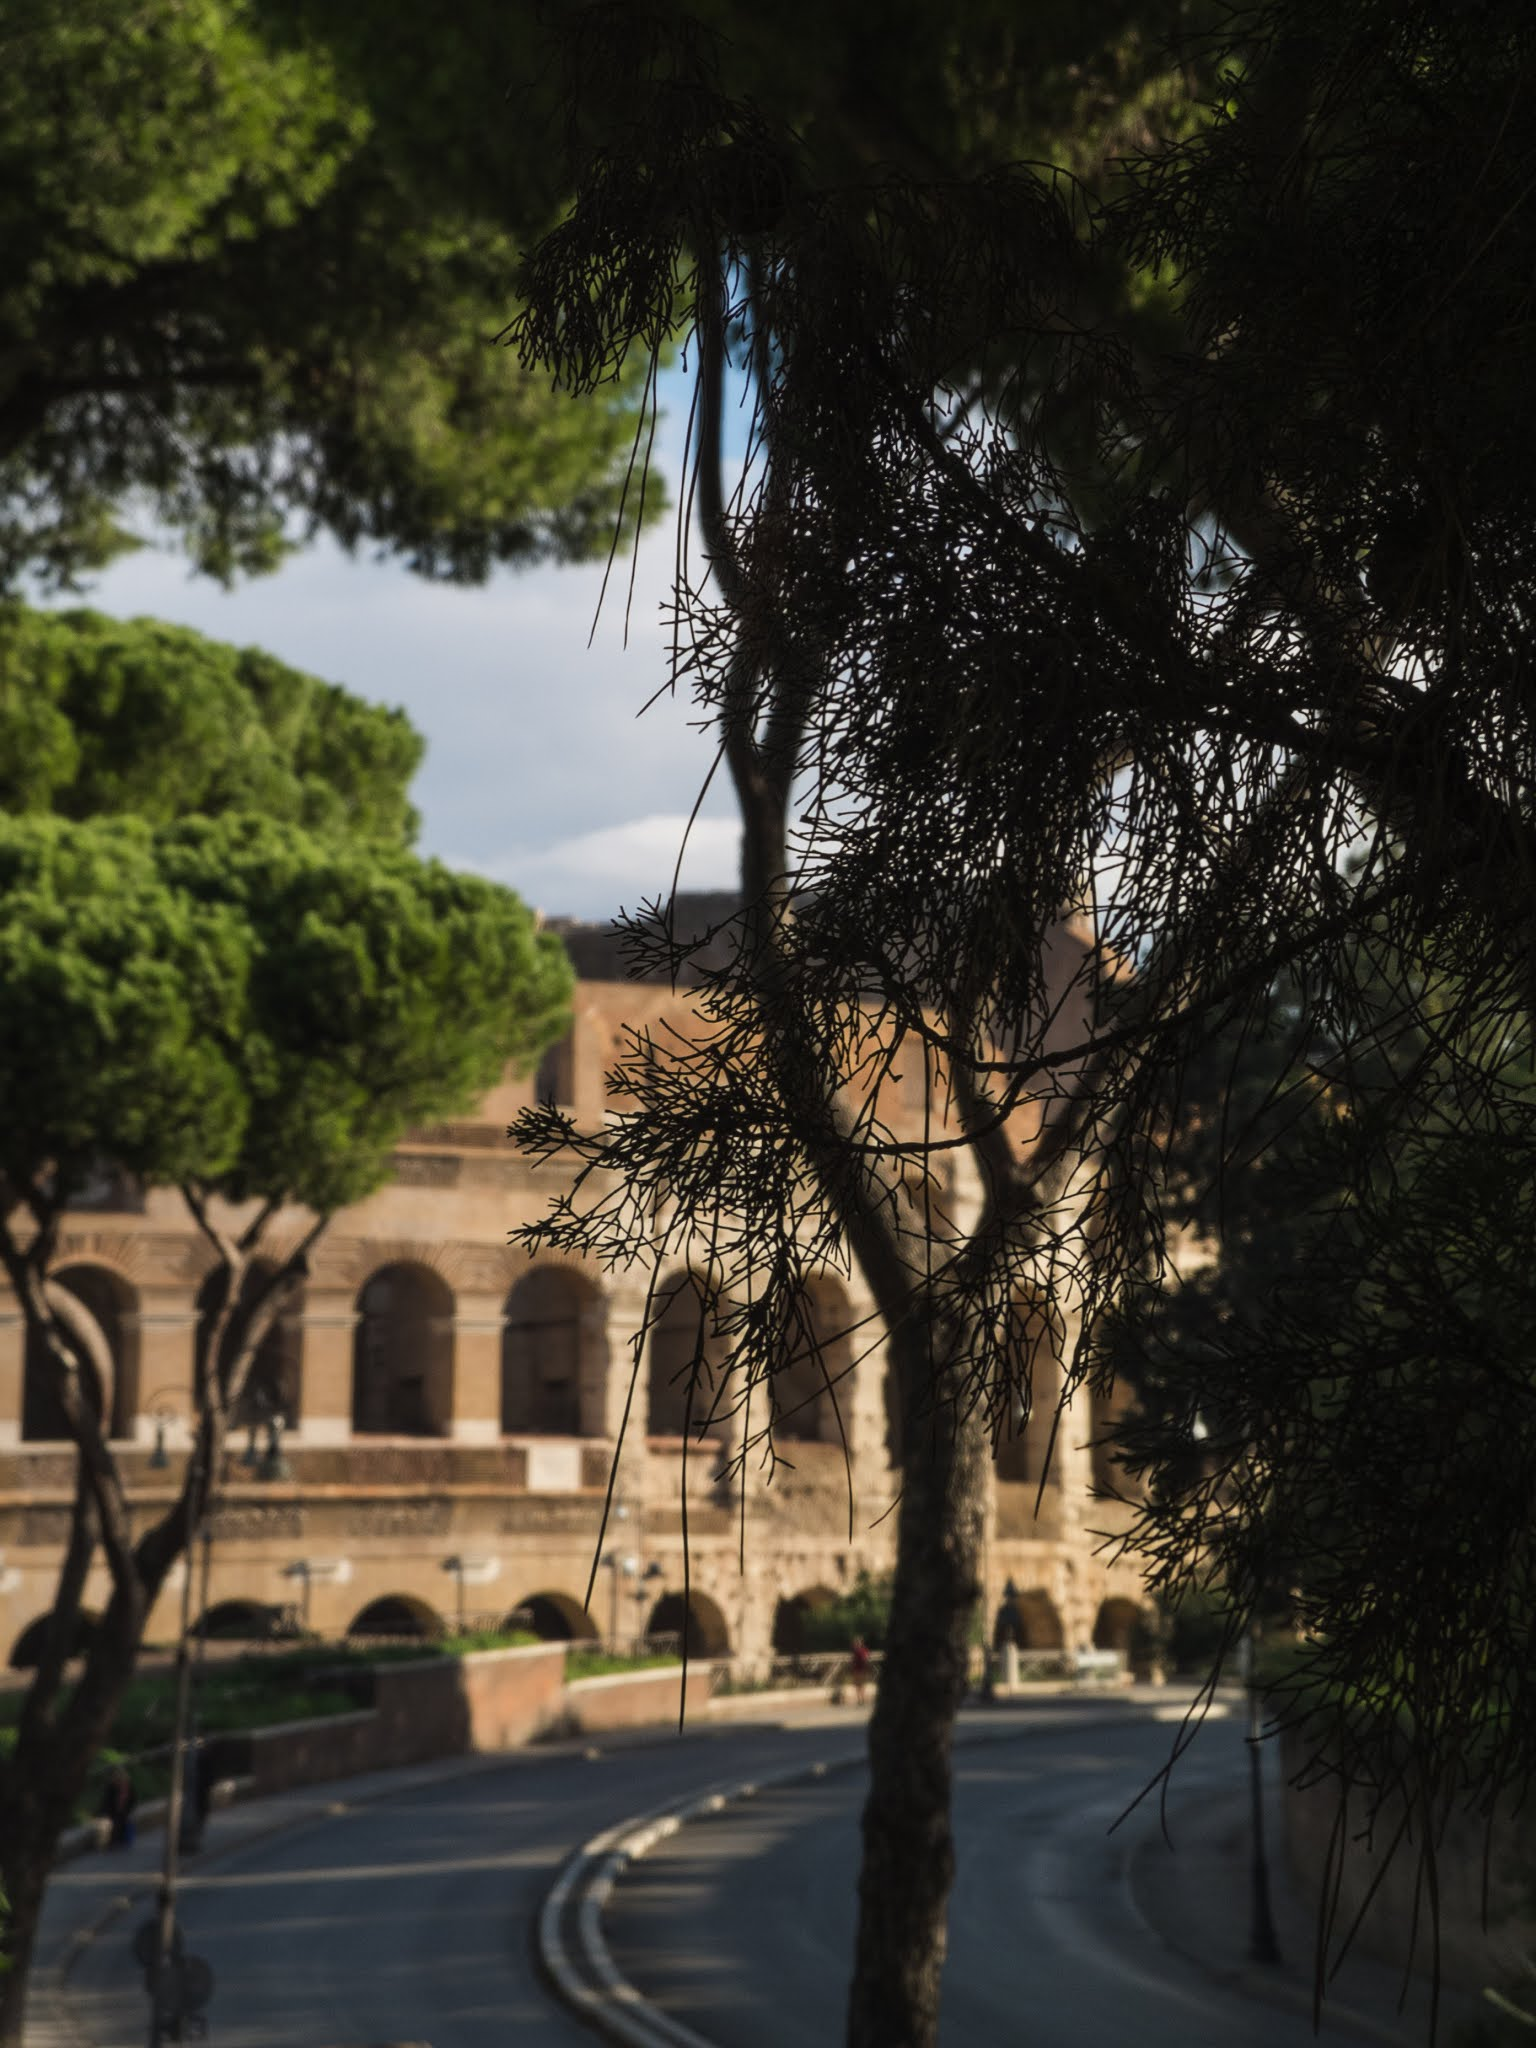 View of the Colosseum through pine tree branches on the Palatine Hill.